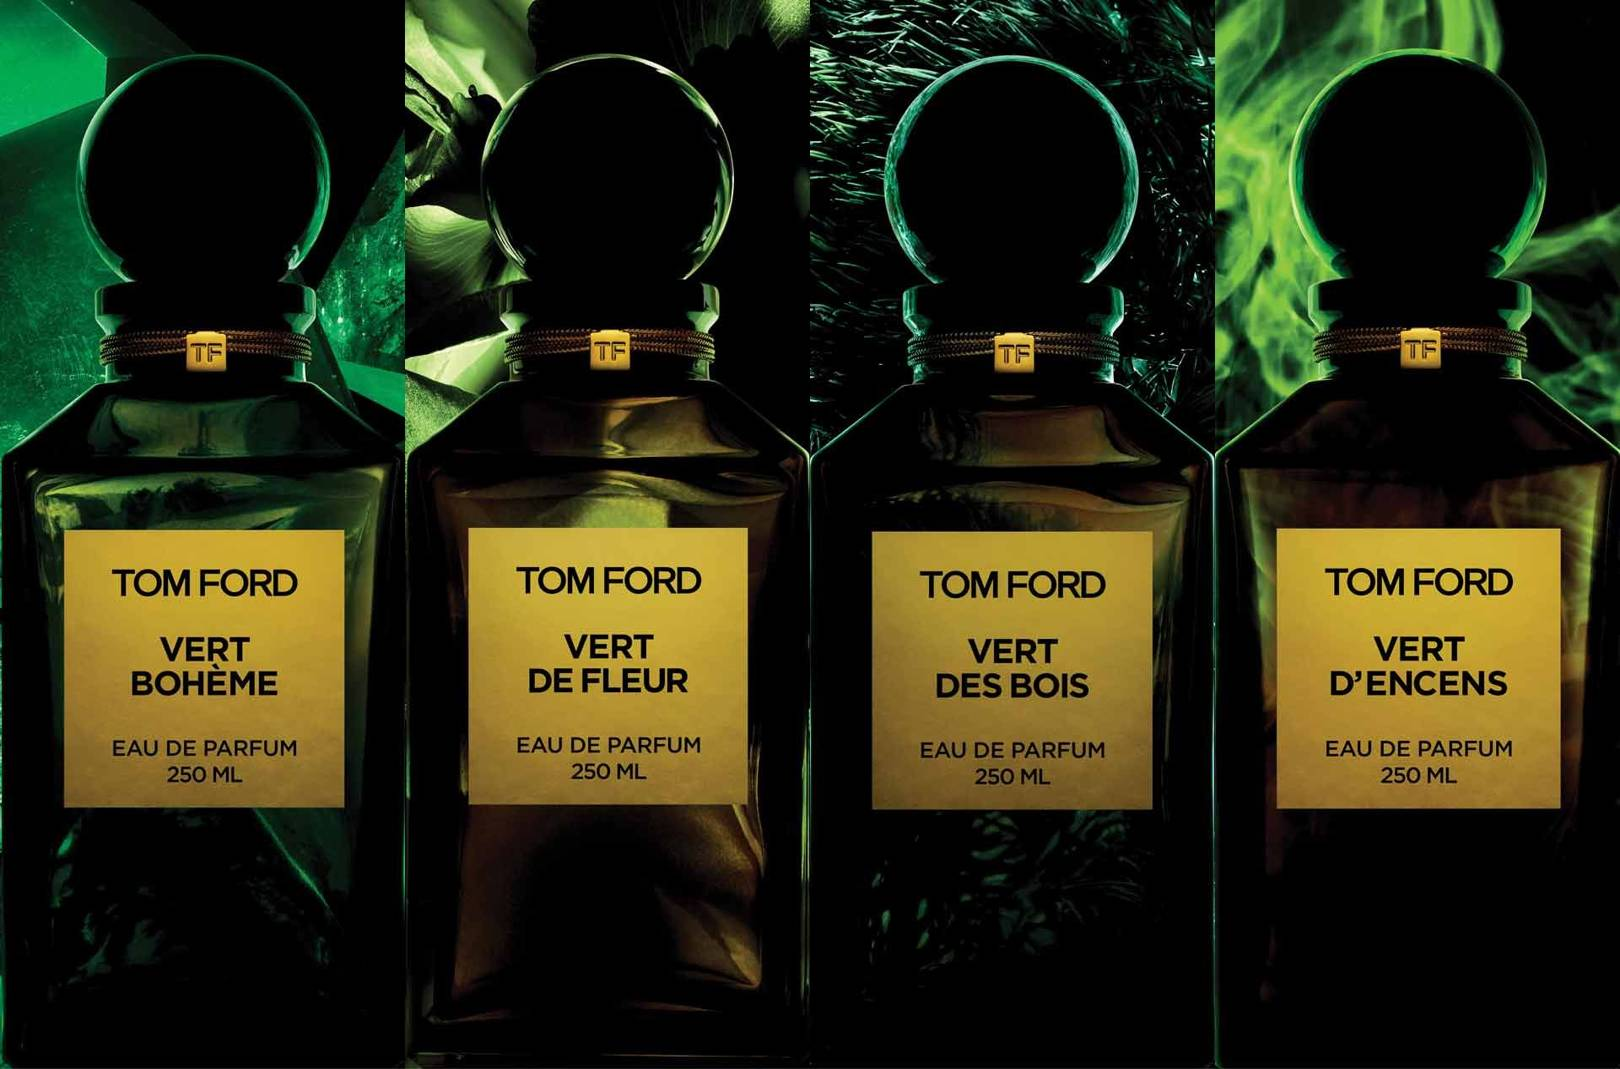 Tom Ford Goes Green Private Blend Les Extraits Verts Fragrance